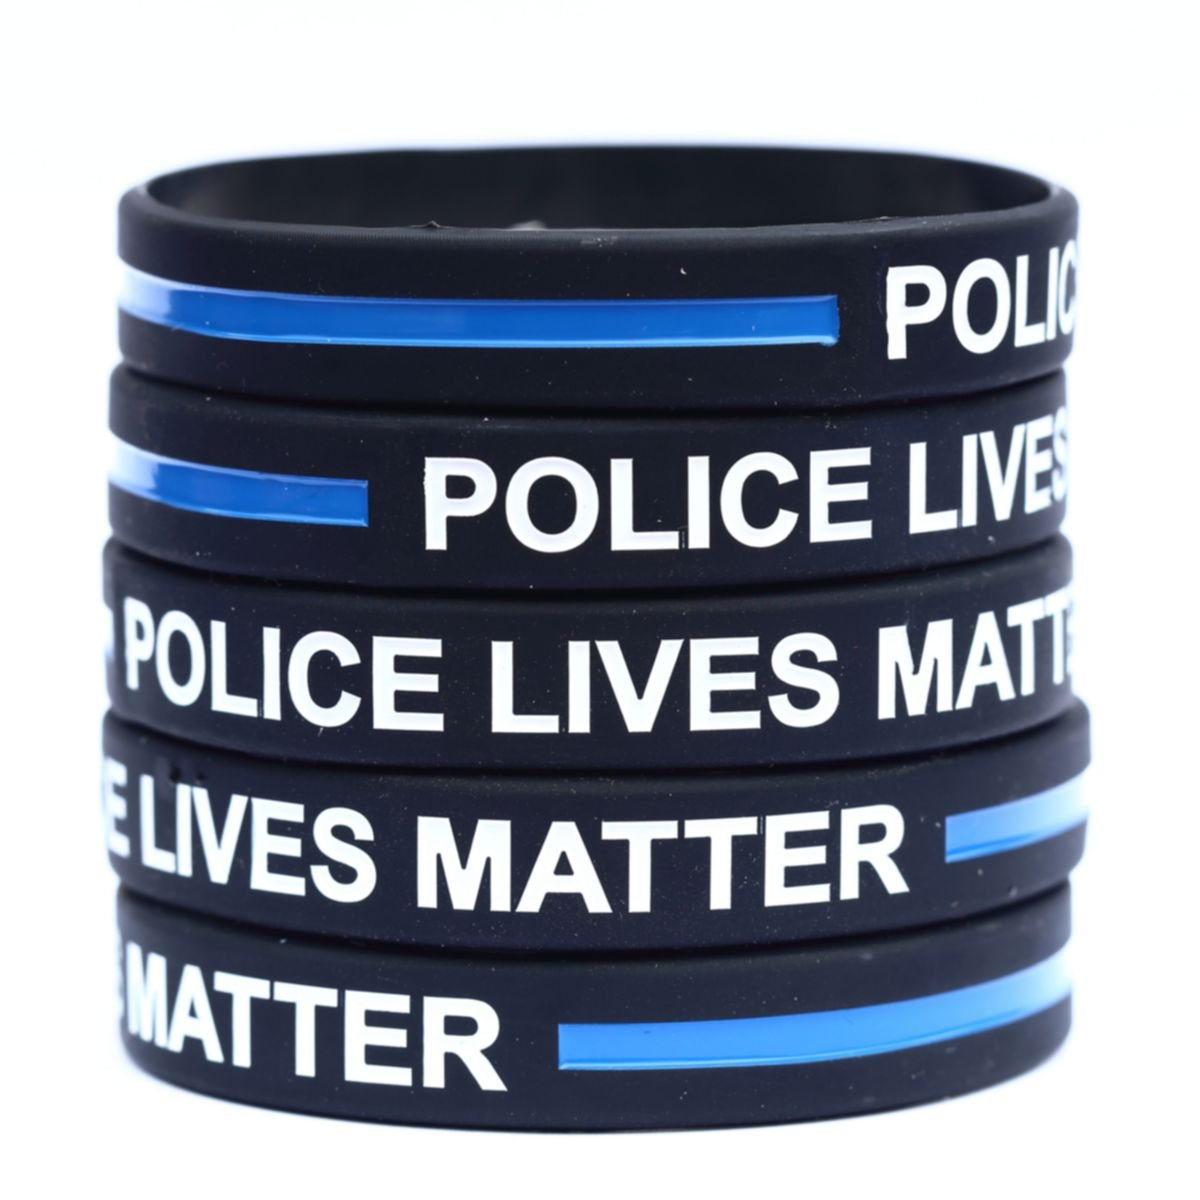 100 Police Lives Matter Thin Blue Line Silicone Wristbands in Support Memory Police Officer by SayitBands (Image #1)